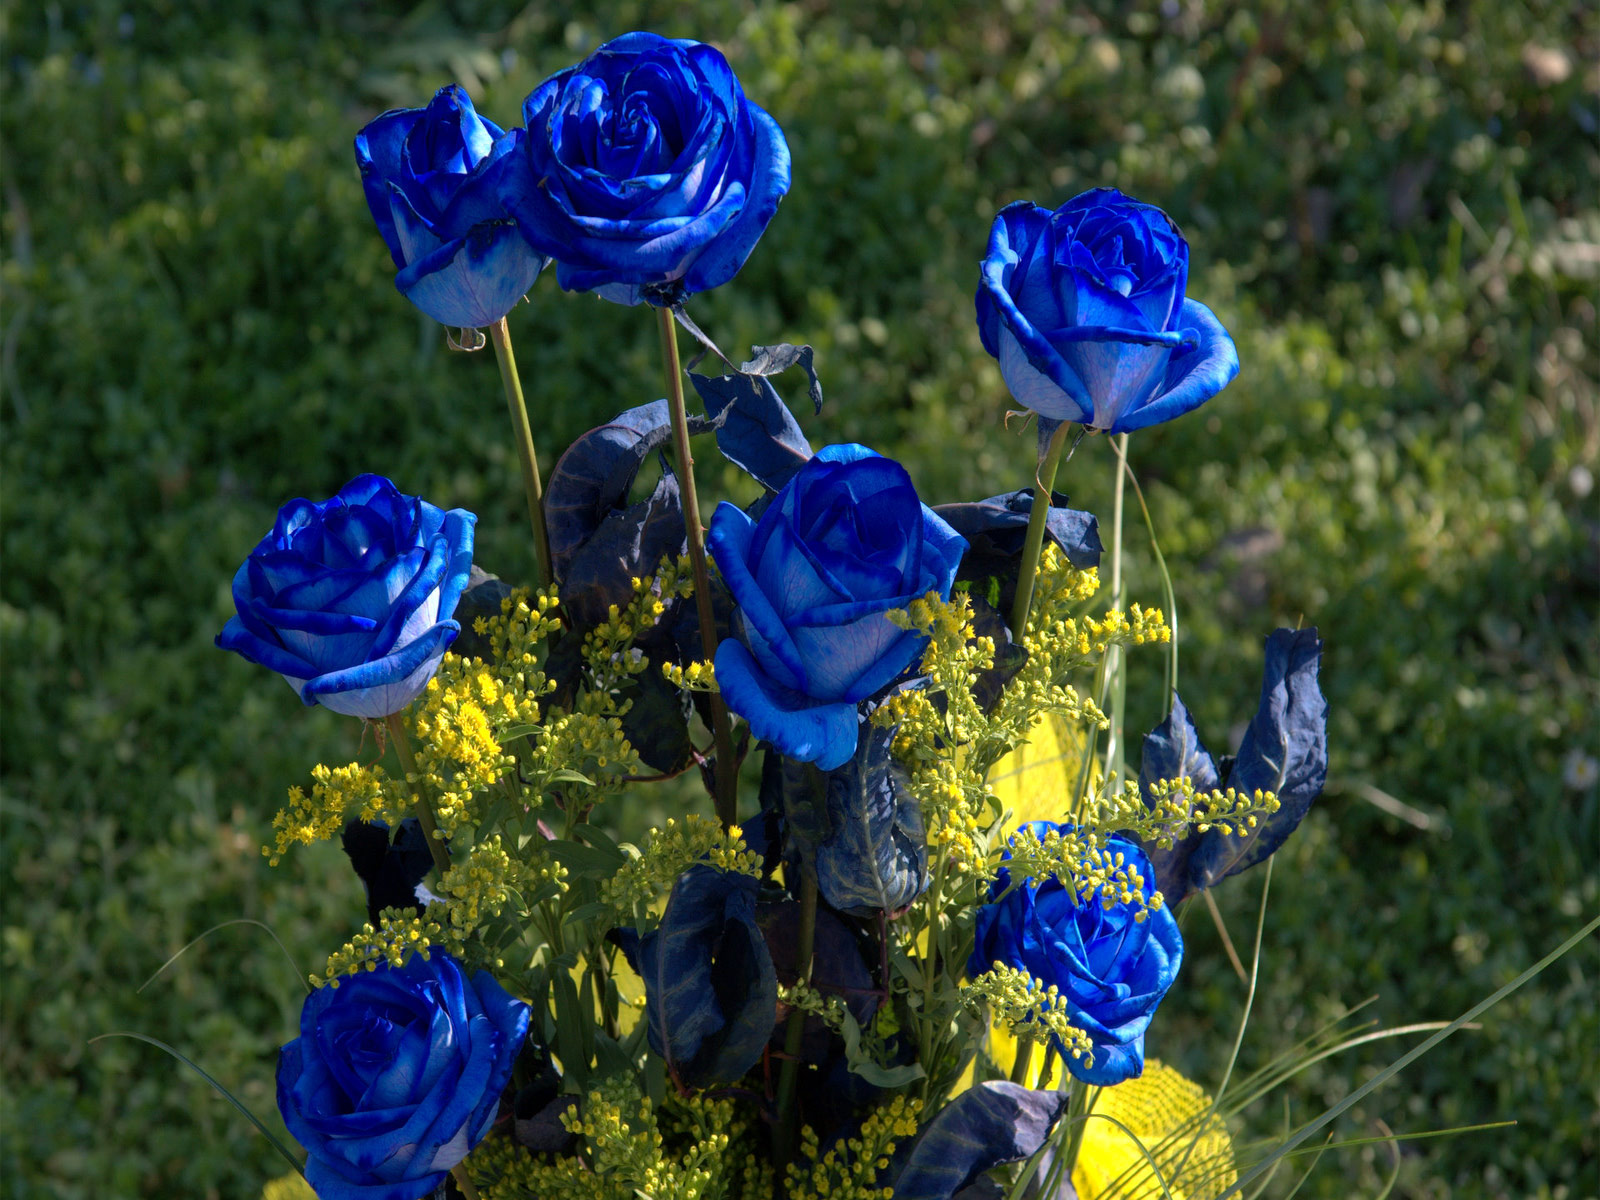 Knumathise real blue roses for sale images real blue roses for sale buycottarizona